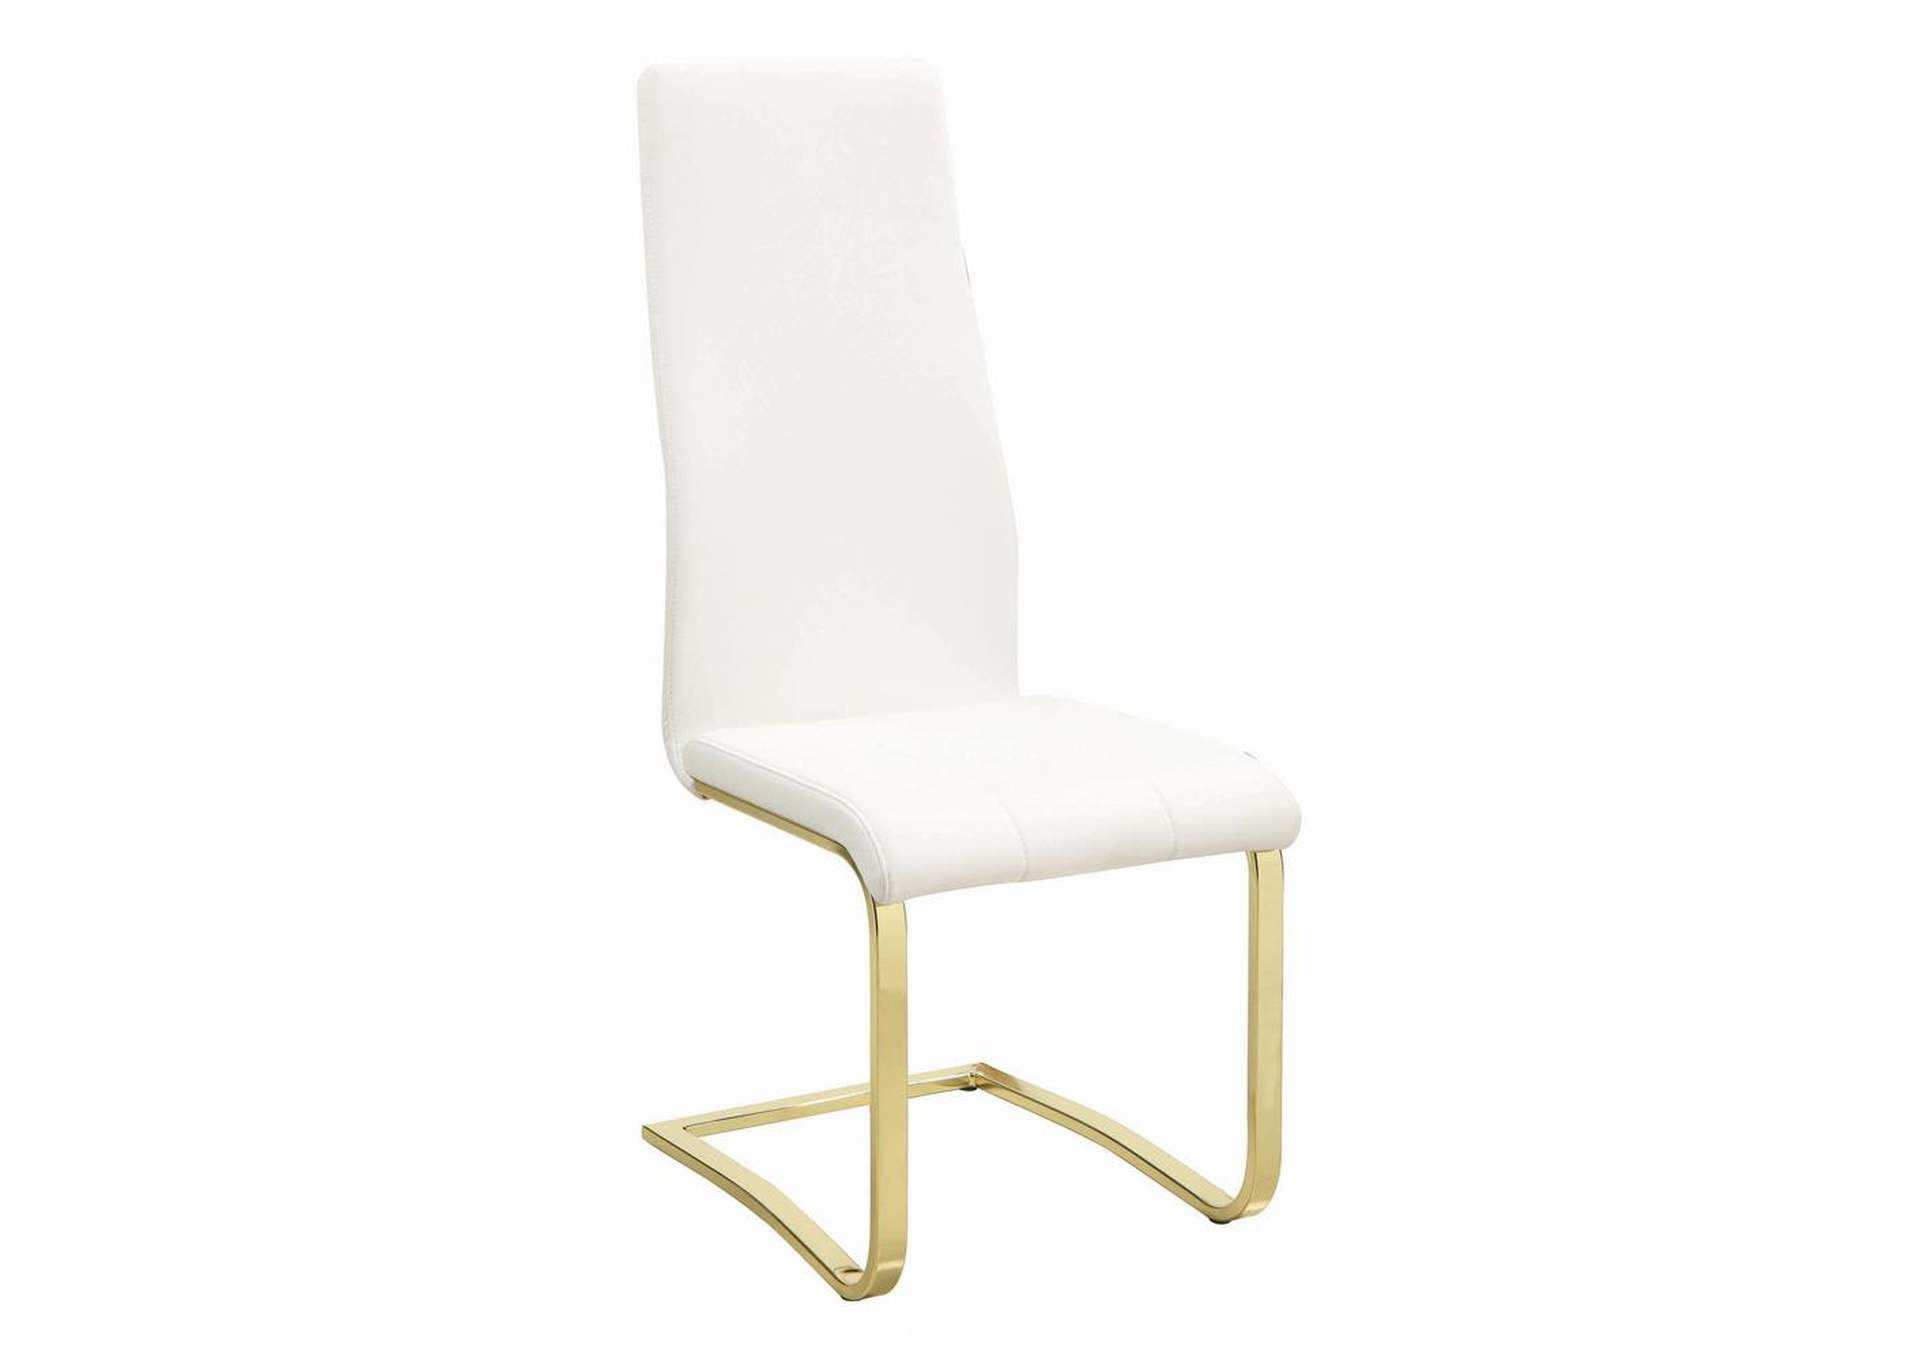 Chanel Side Chairs White And Rustic Brass (Set of 4),Coaster Furniture